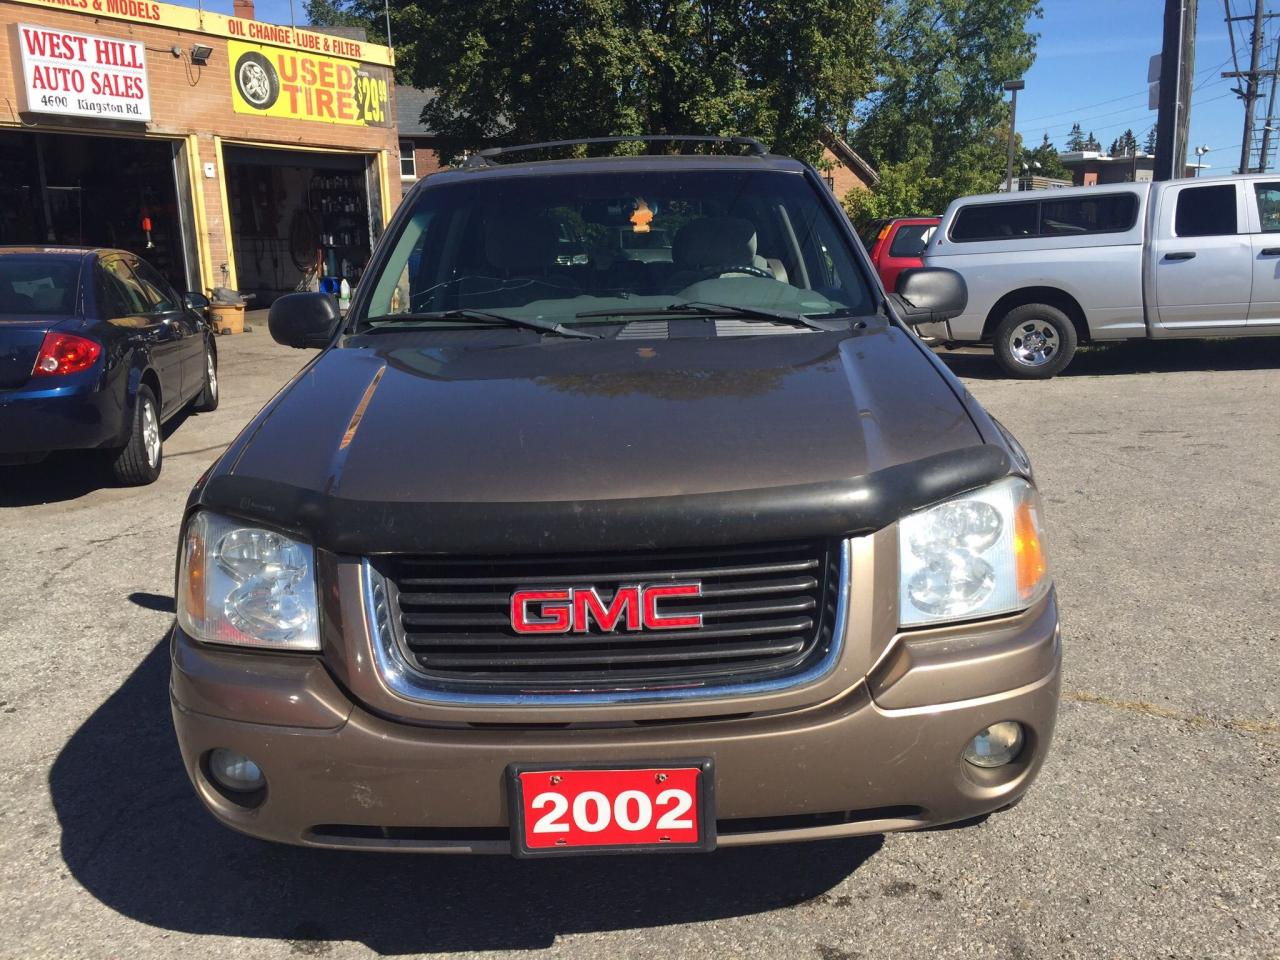 used 2002 gmc envoy sle british colombia car for sale in scarborough ontario. Black Bedroom Furniture Sets. Home Design Ideas